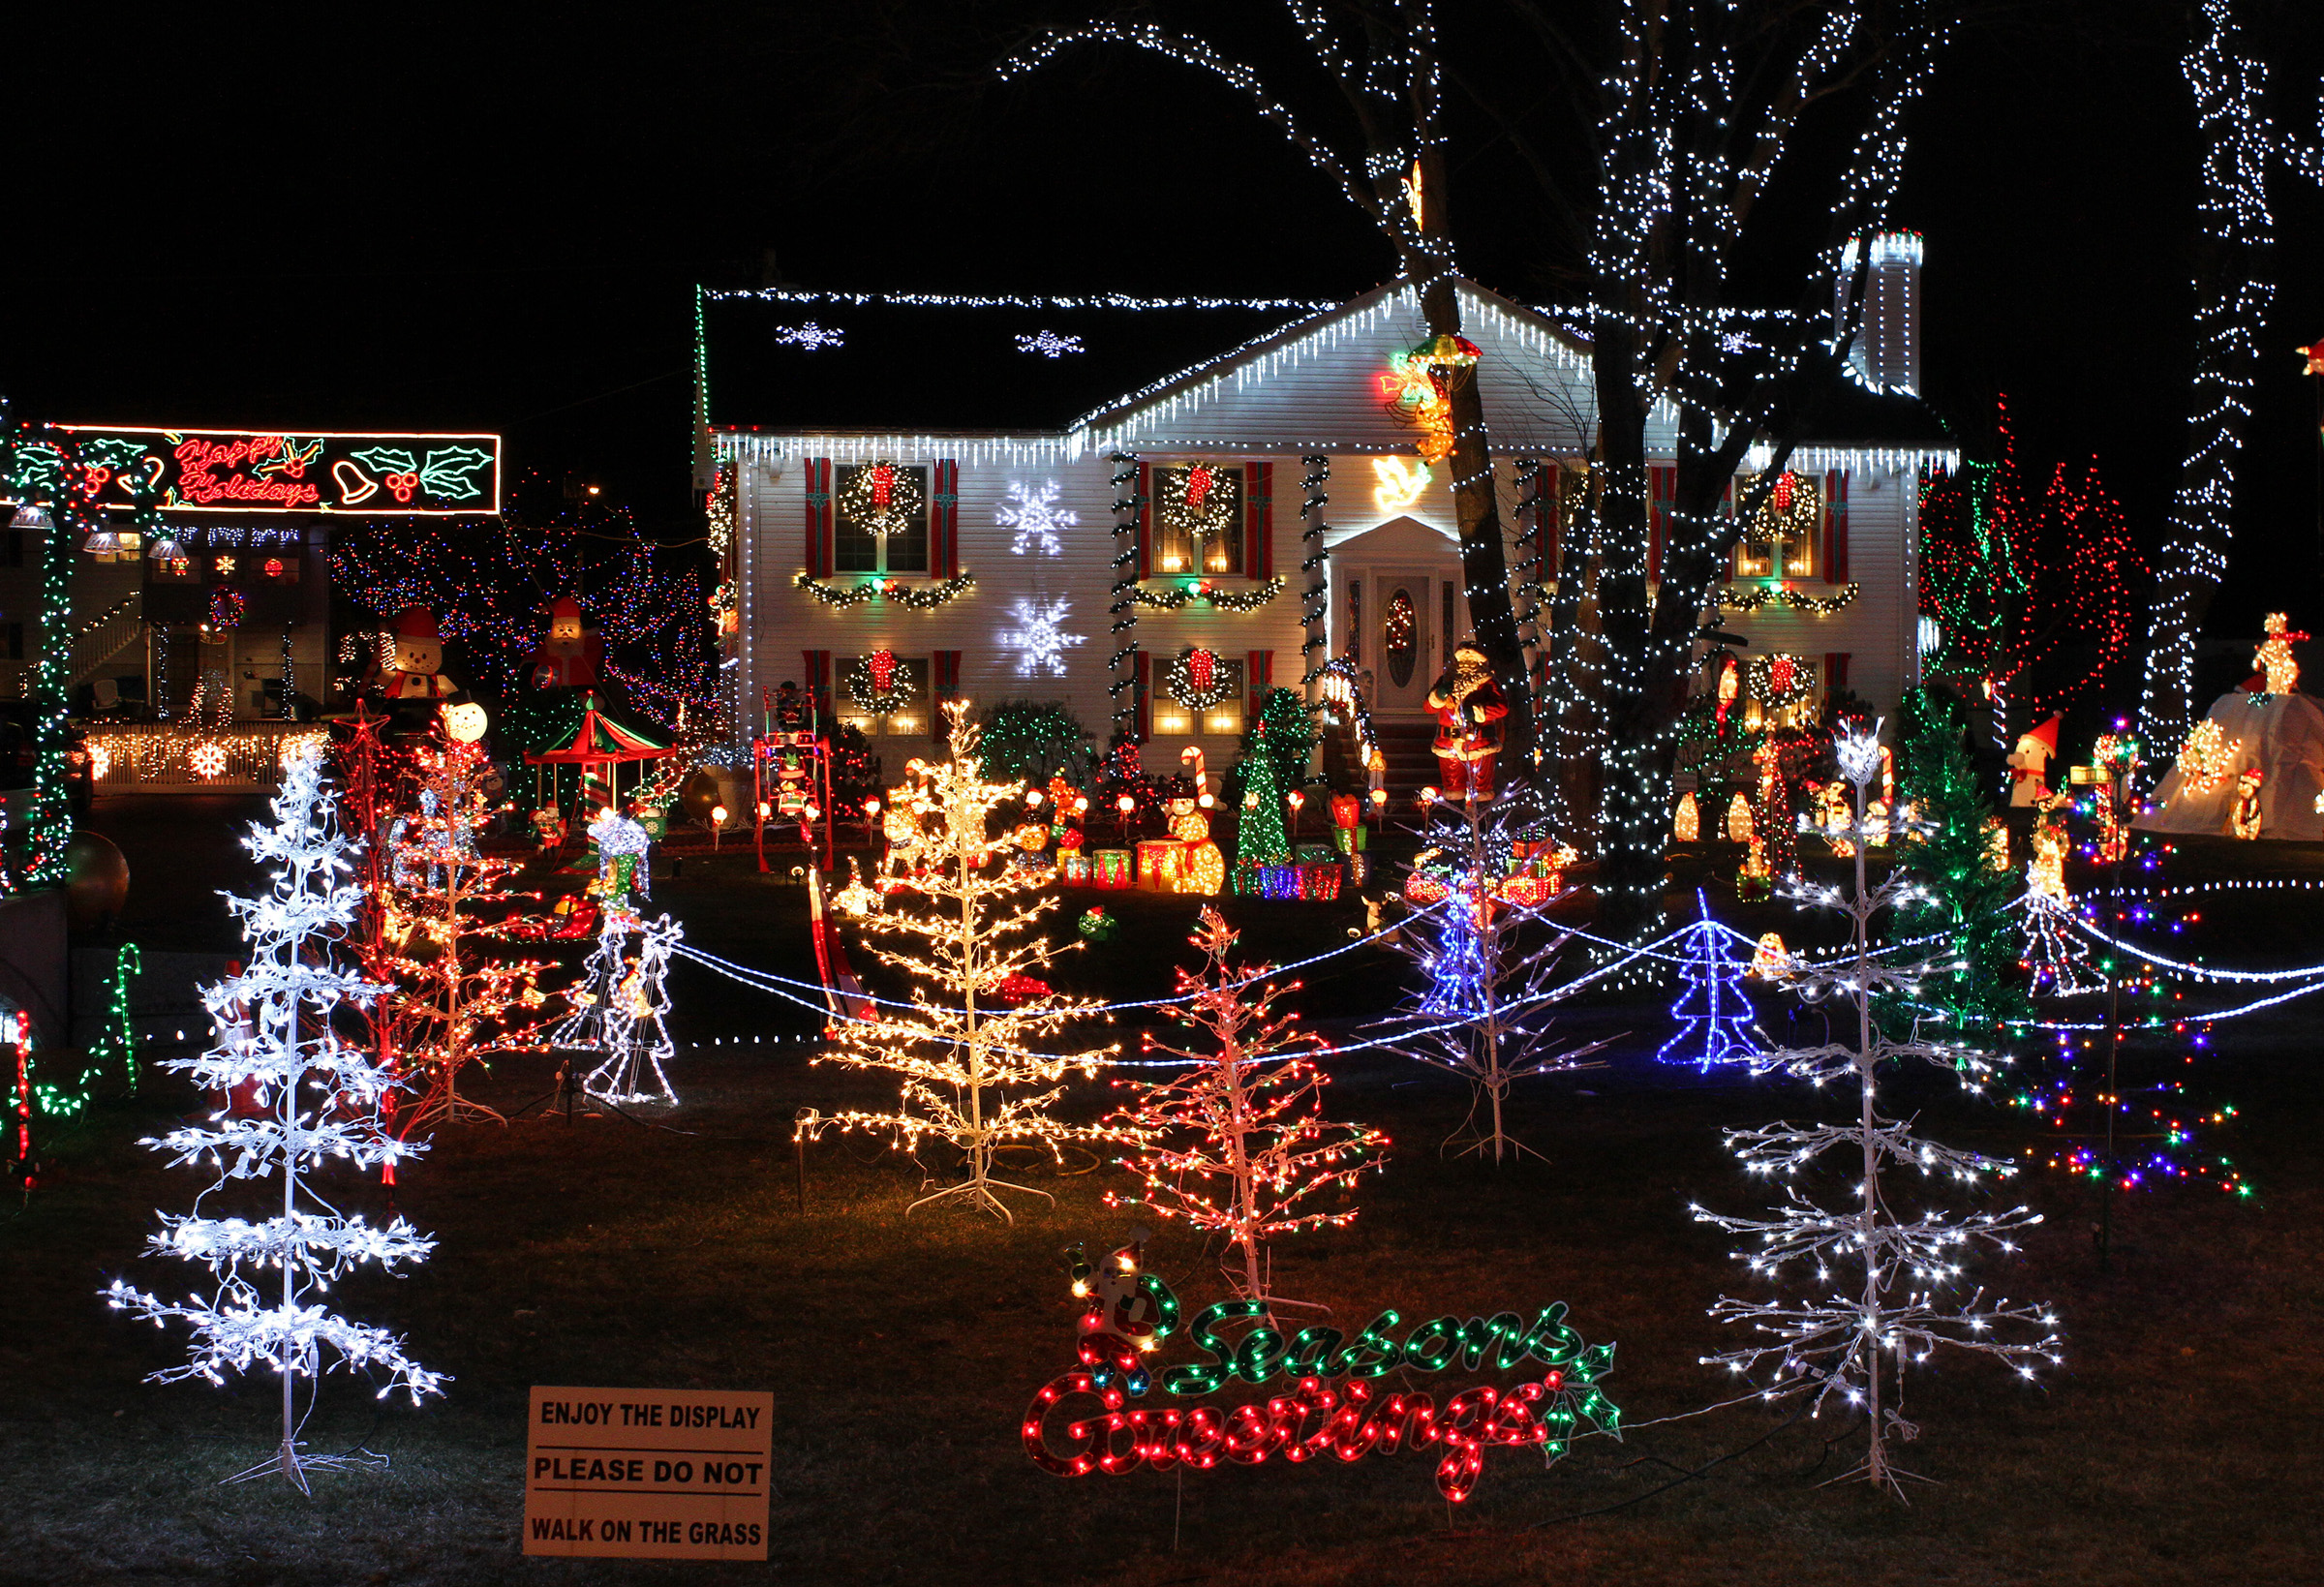 File Christmas Lights house displayJPG   Wikimedia Commons pf1RO5Tq